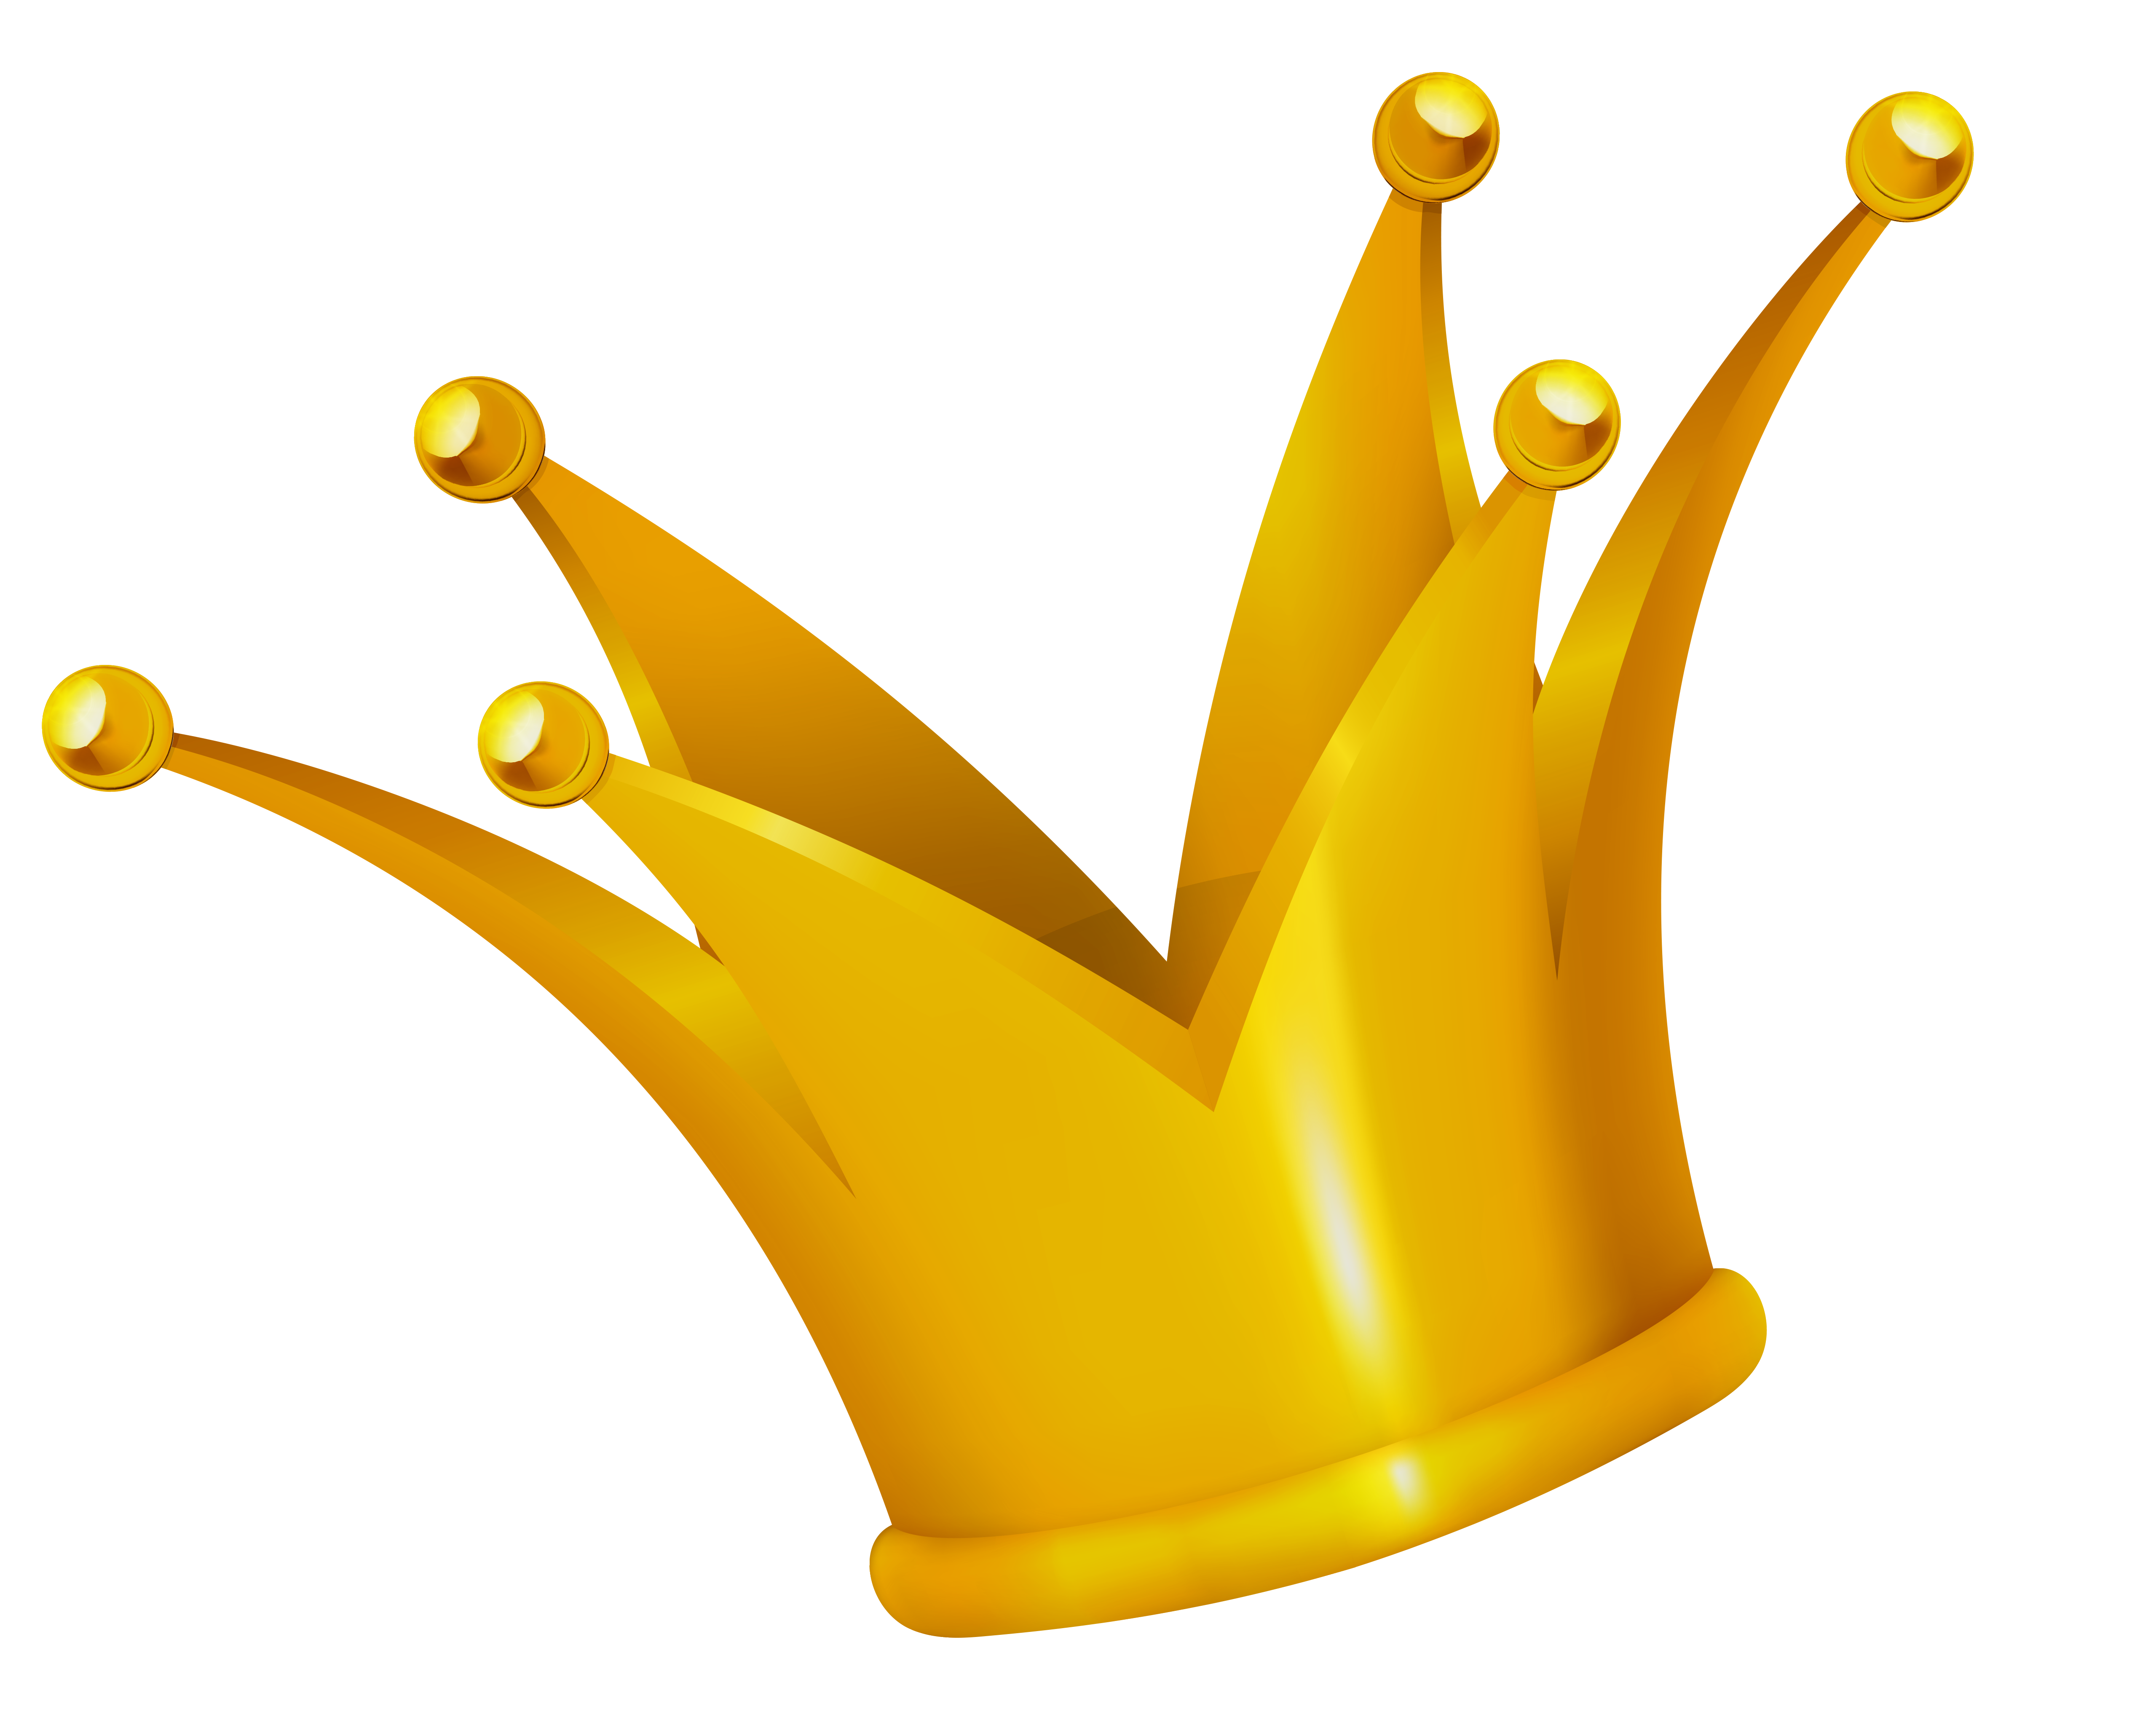 Small crown clipart picture transparent stock clipart crown | Clipart picture transparent stock